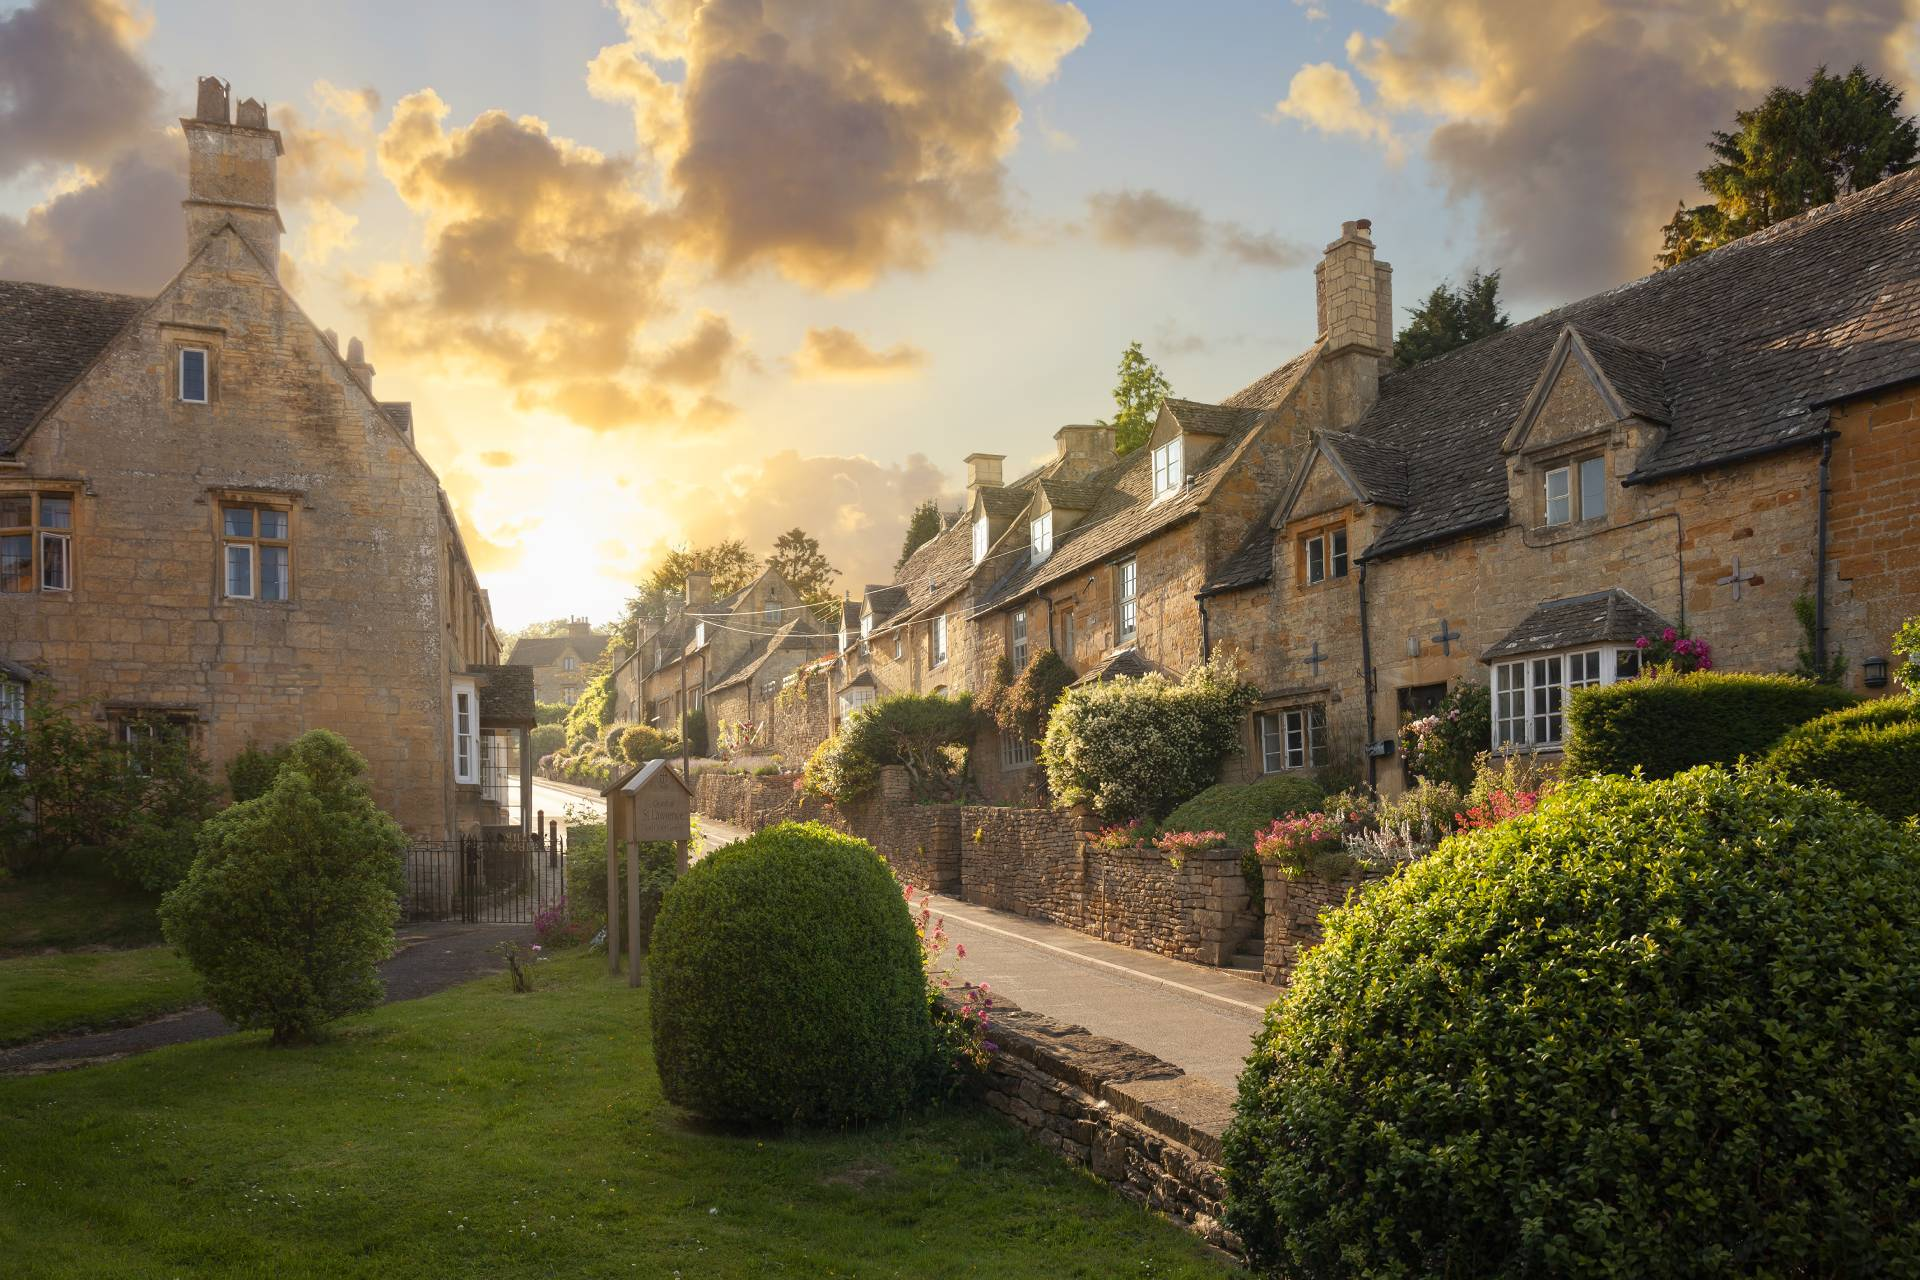 Lovely village setting in the Cotswolds